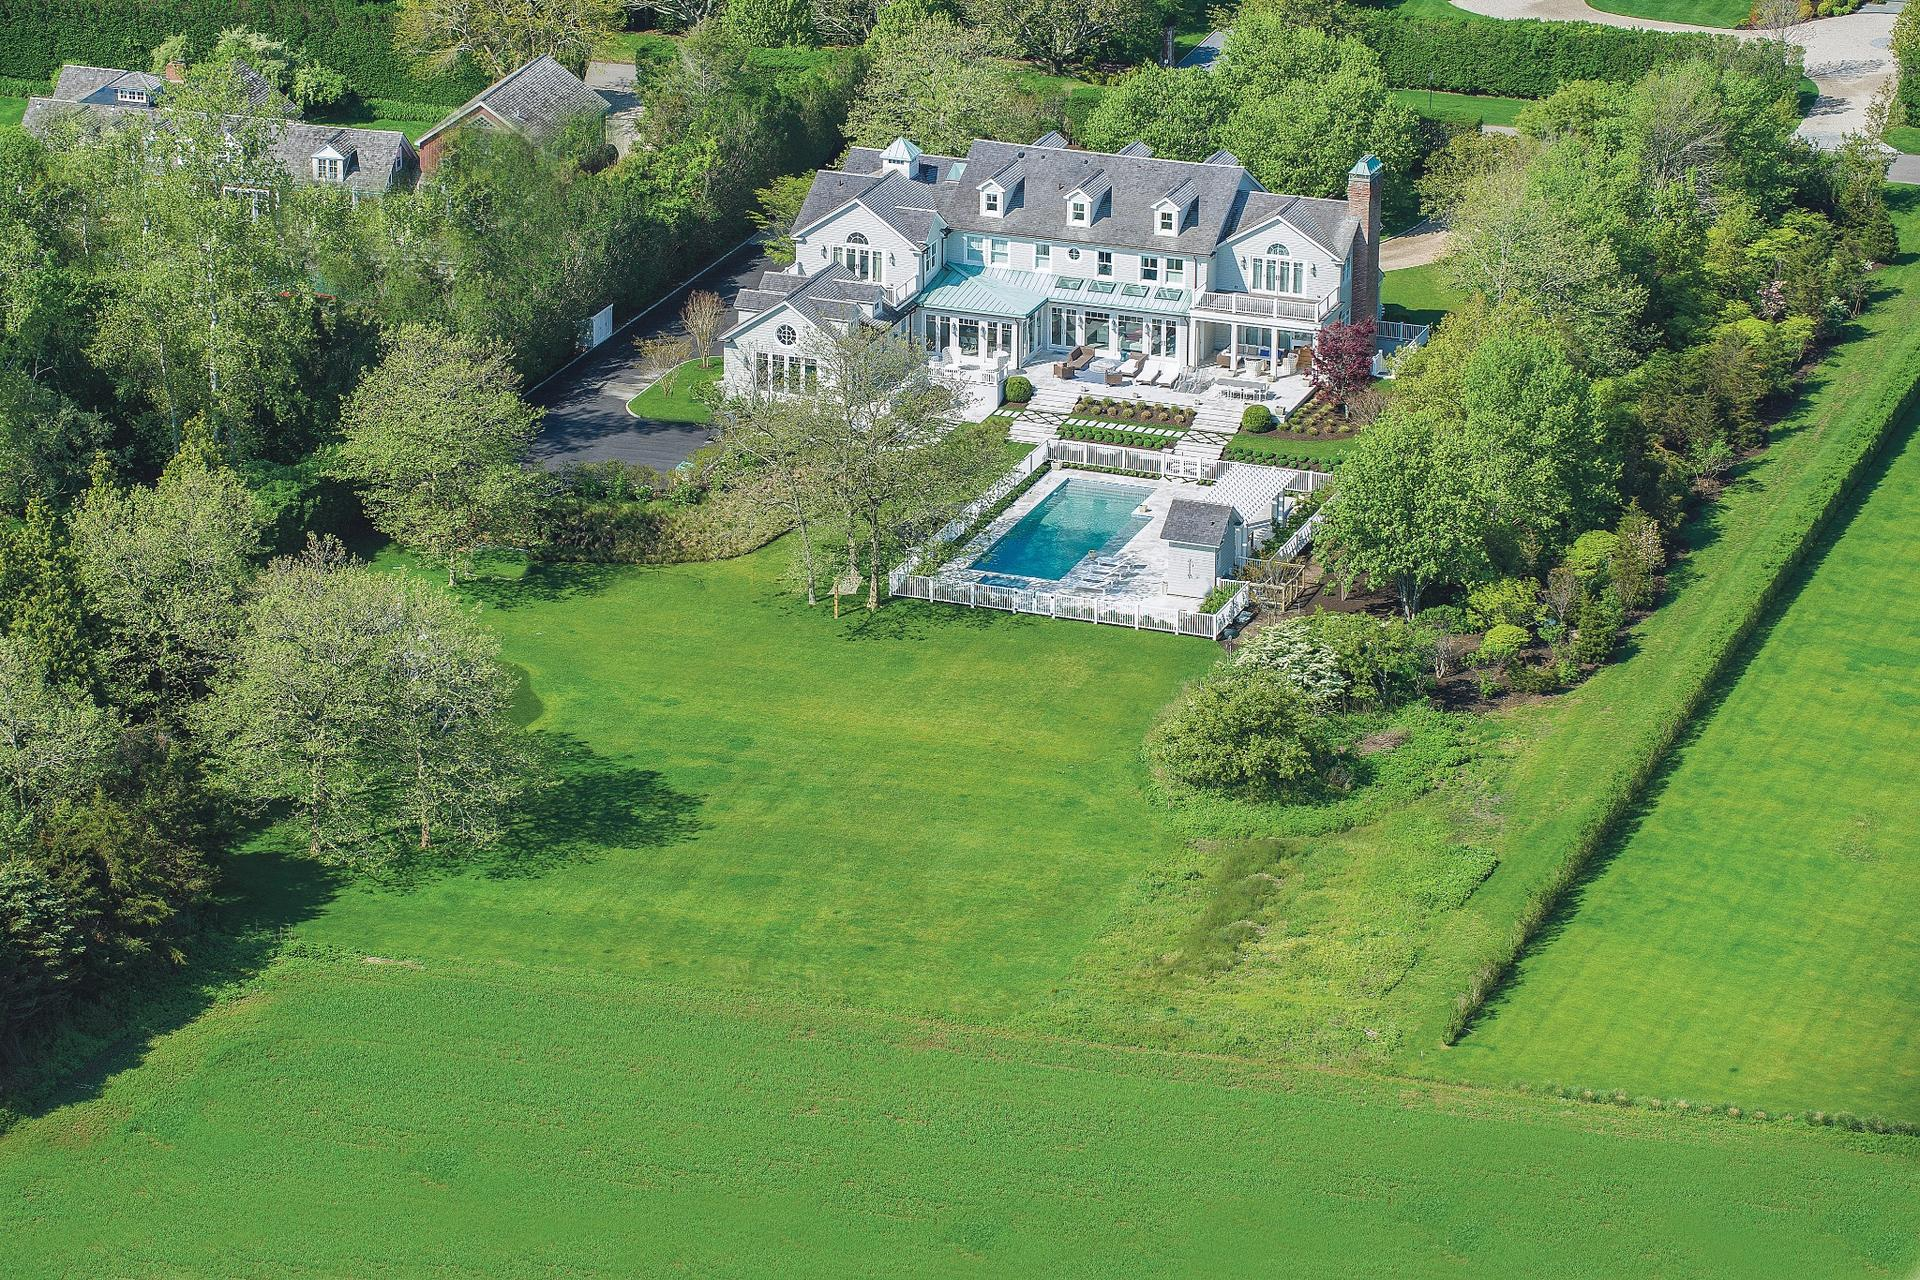 Single Family Home for Sale at Exceptional Sagaponack Village Near Beach 99 Fairfield Pond Lane, Sagaponack, New York